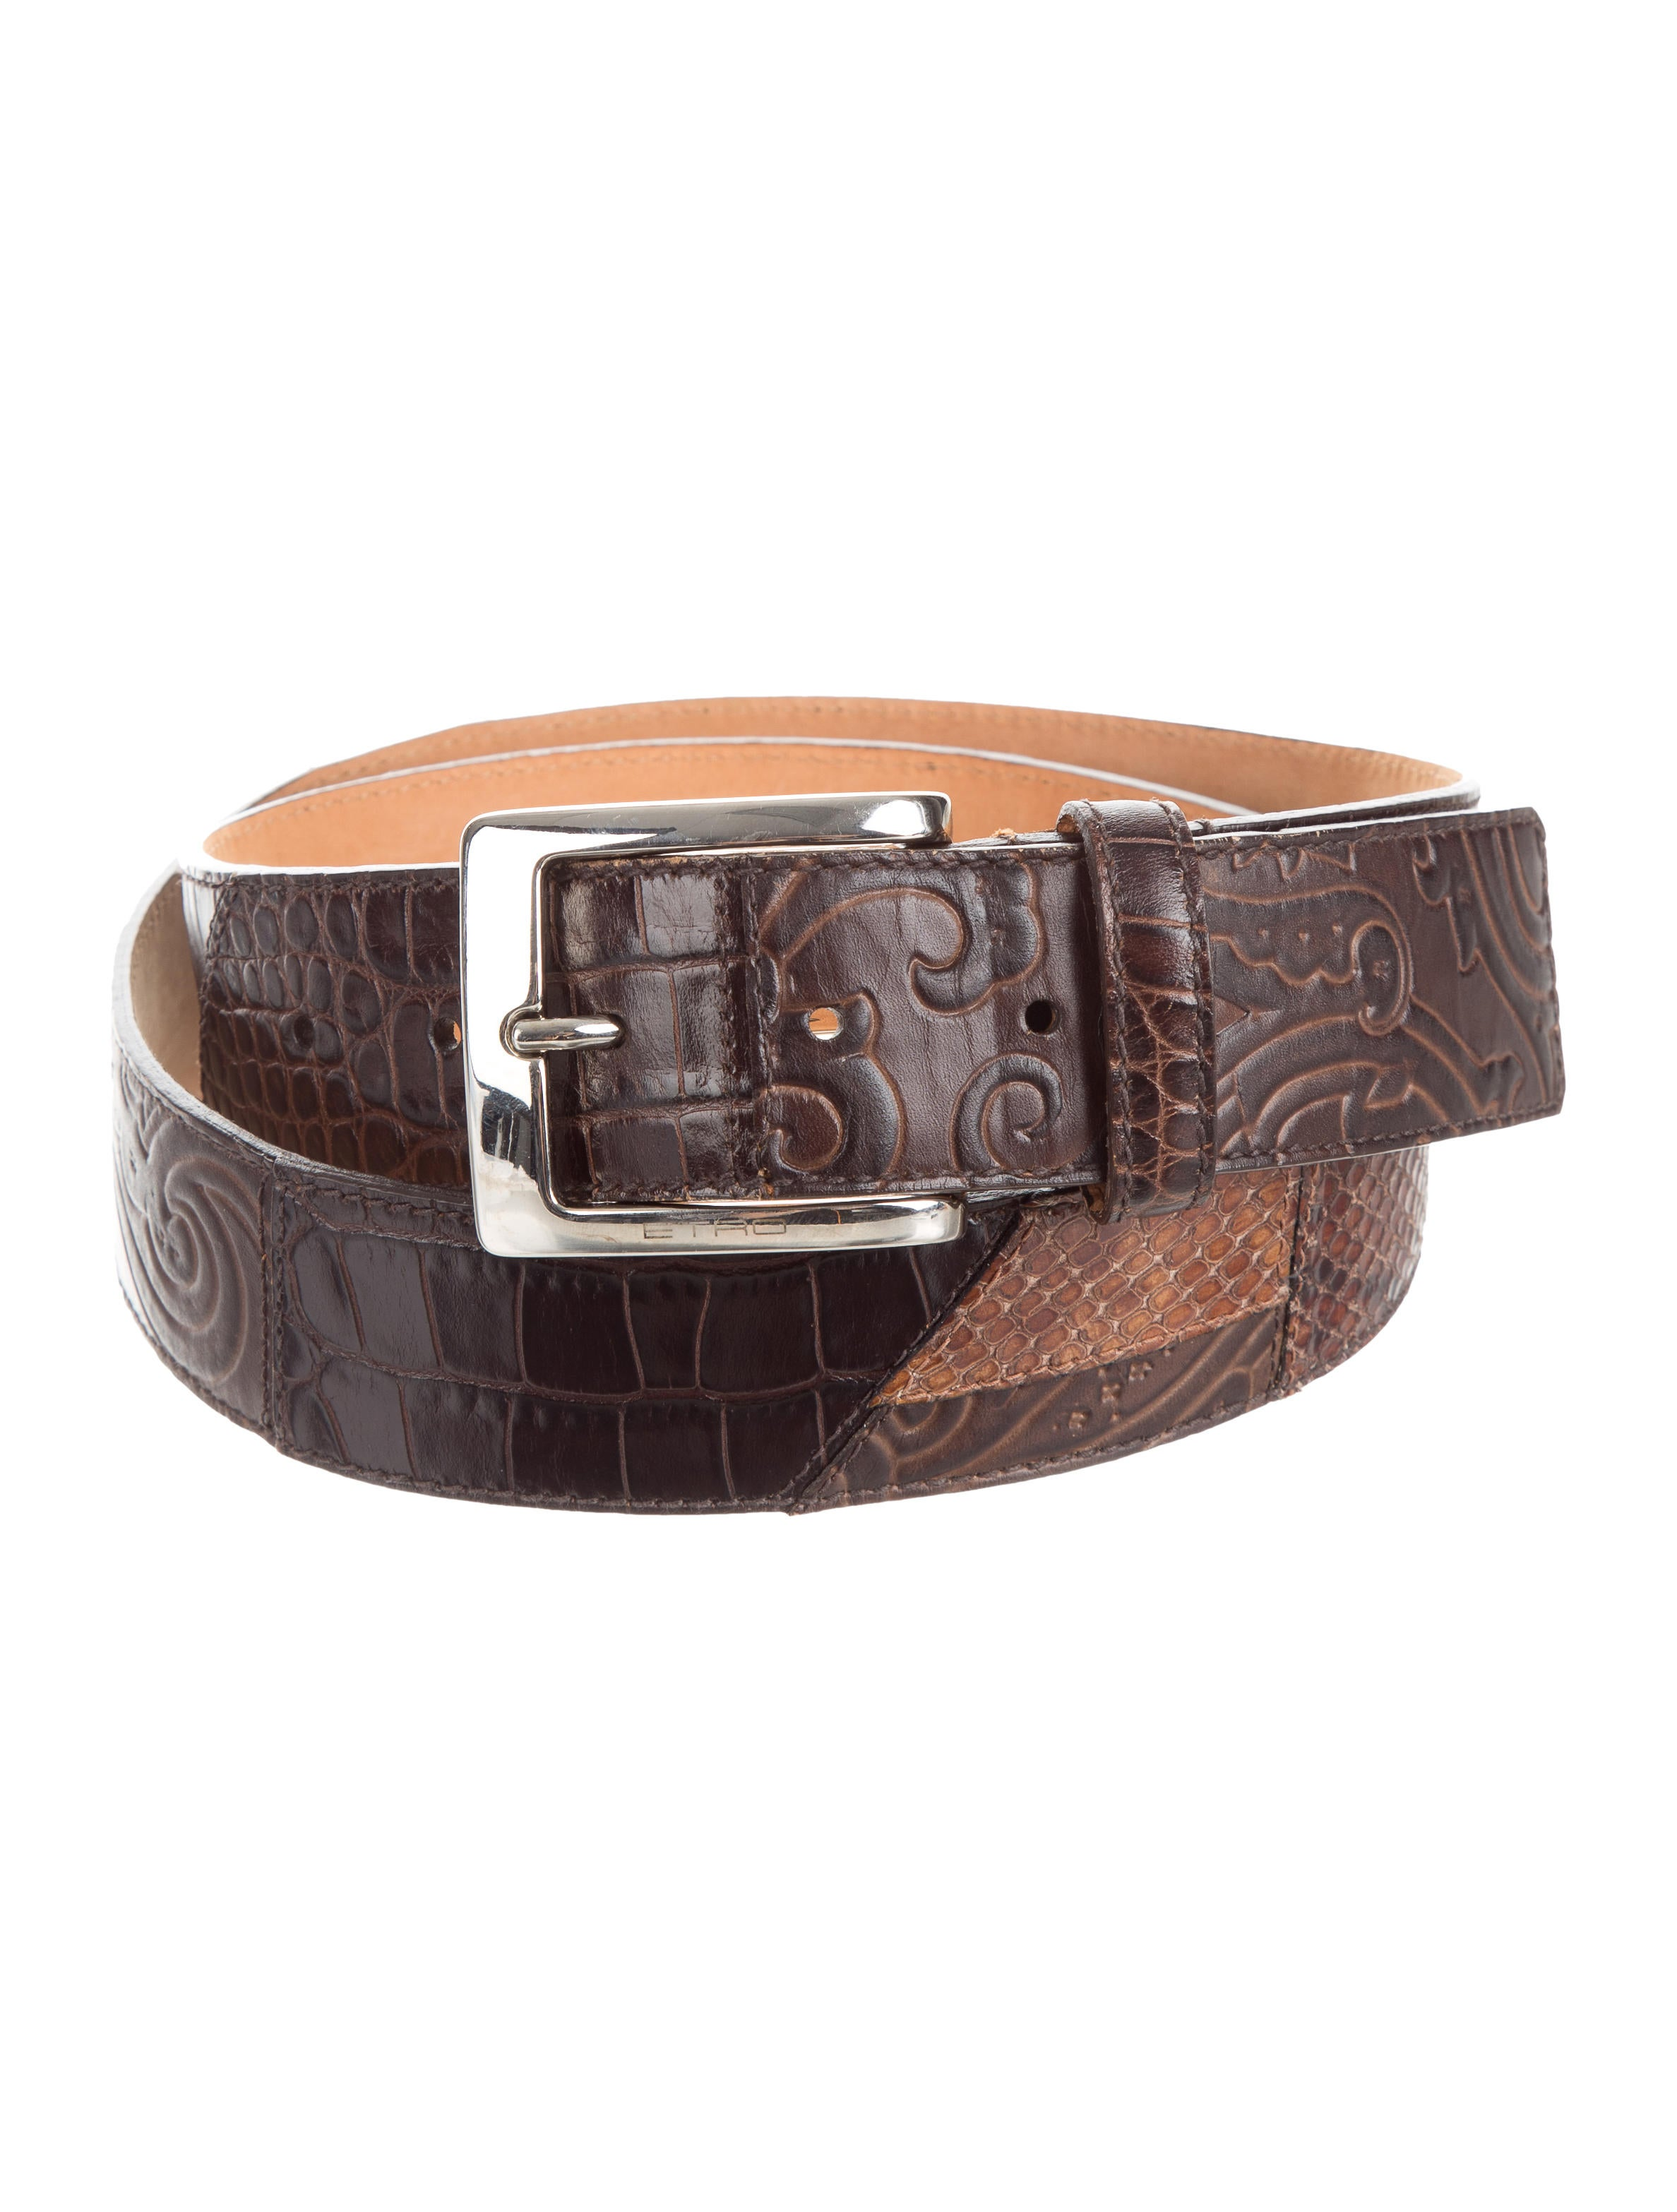 etro embossed leather belt accessories etr46133 the